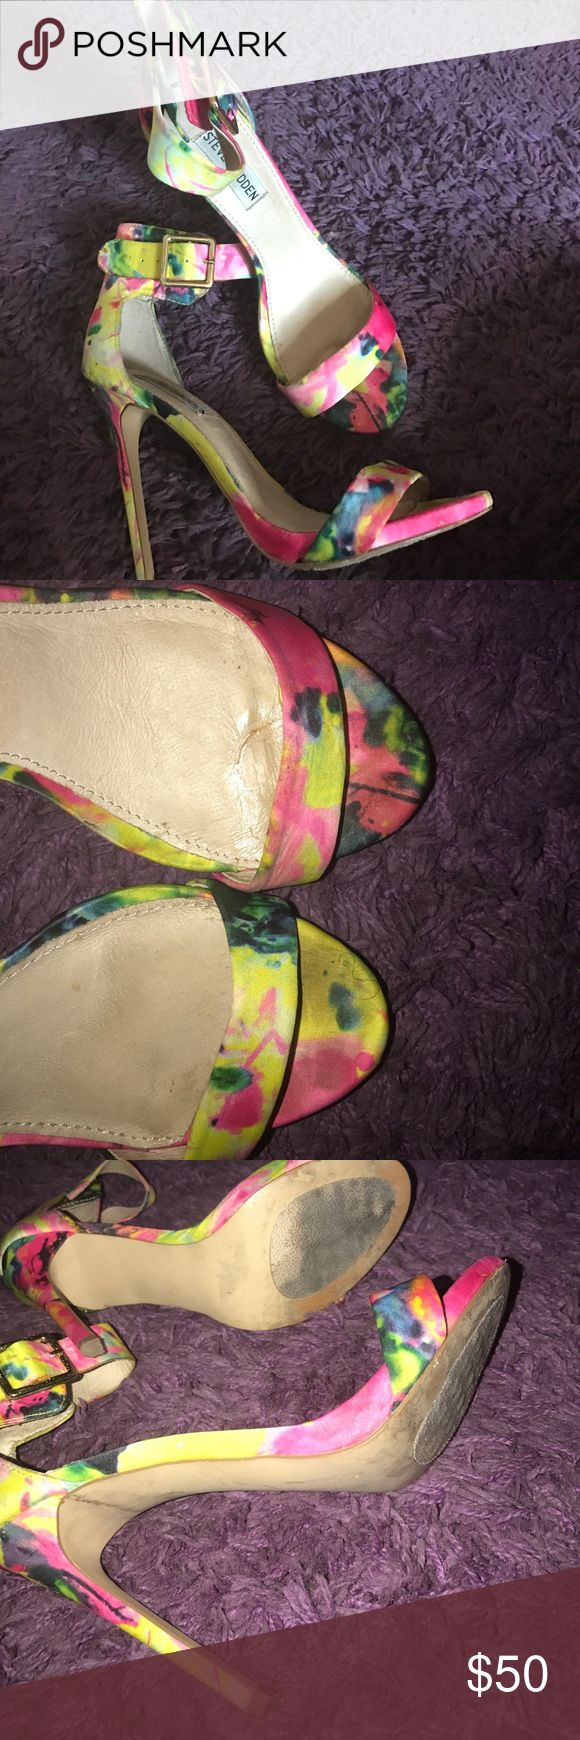 NEON SANDAL HEELS Steve Madden ; colors: neon green, pink, yellow blue condition: worn 3 times (Used but good) see pictures please Steve Madden Shoes Sandals